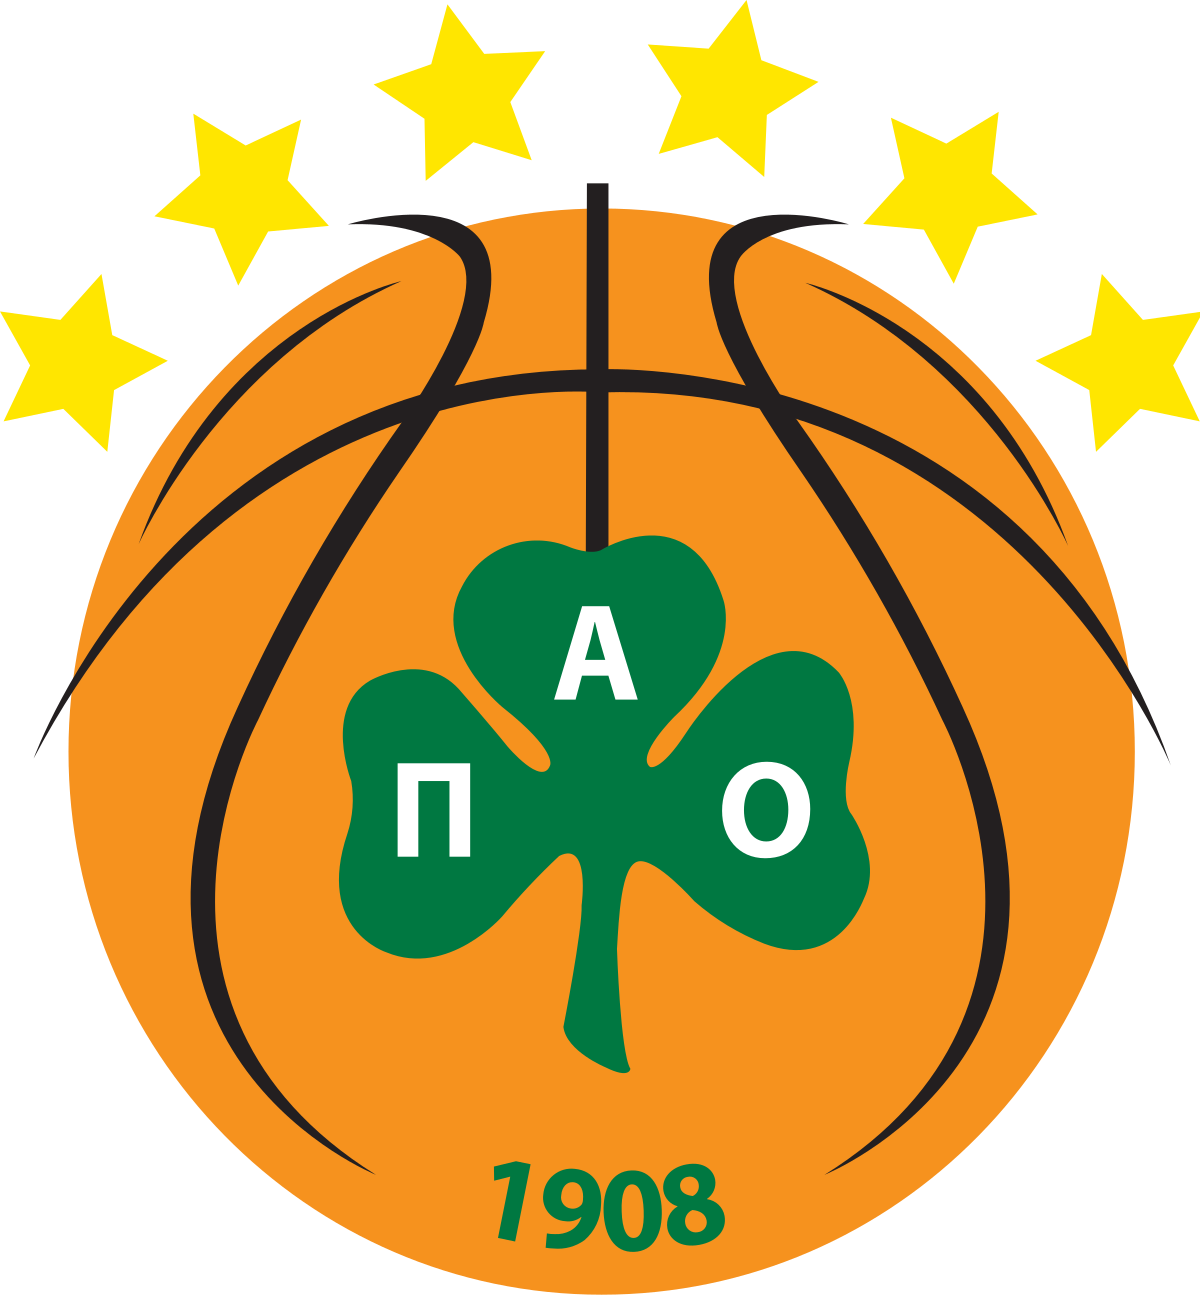 Basketball stars branches clipart clipart download Panathinaikos B.C. - Wikipedia clipart download